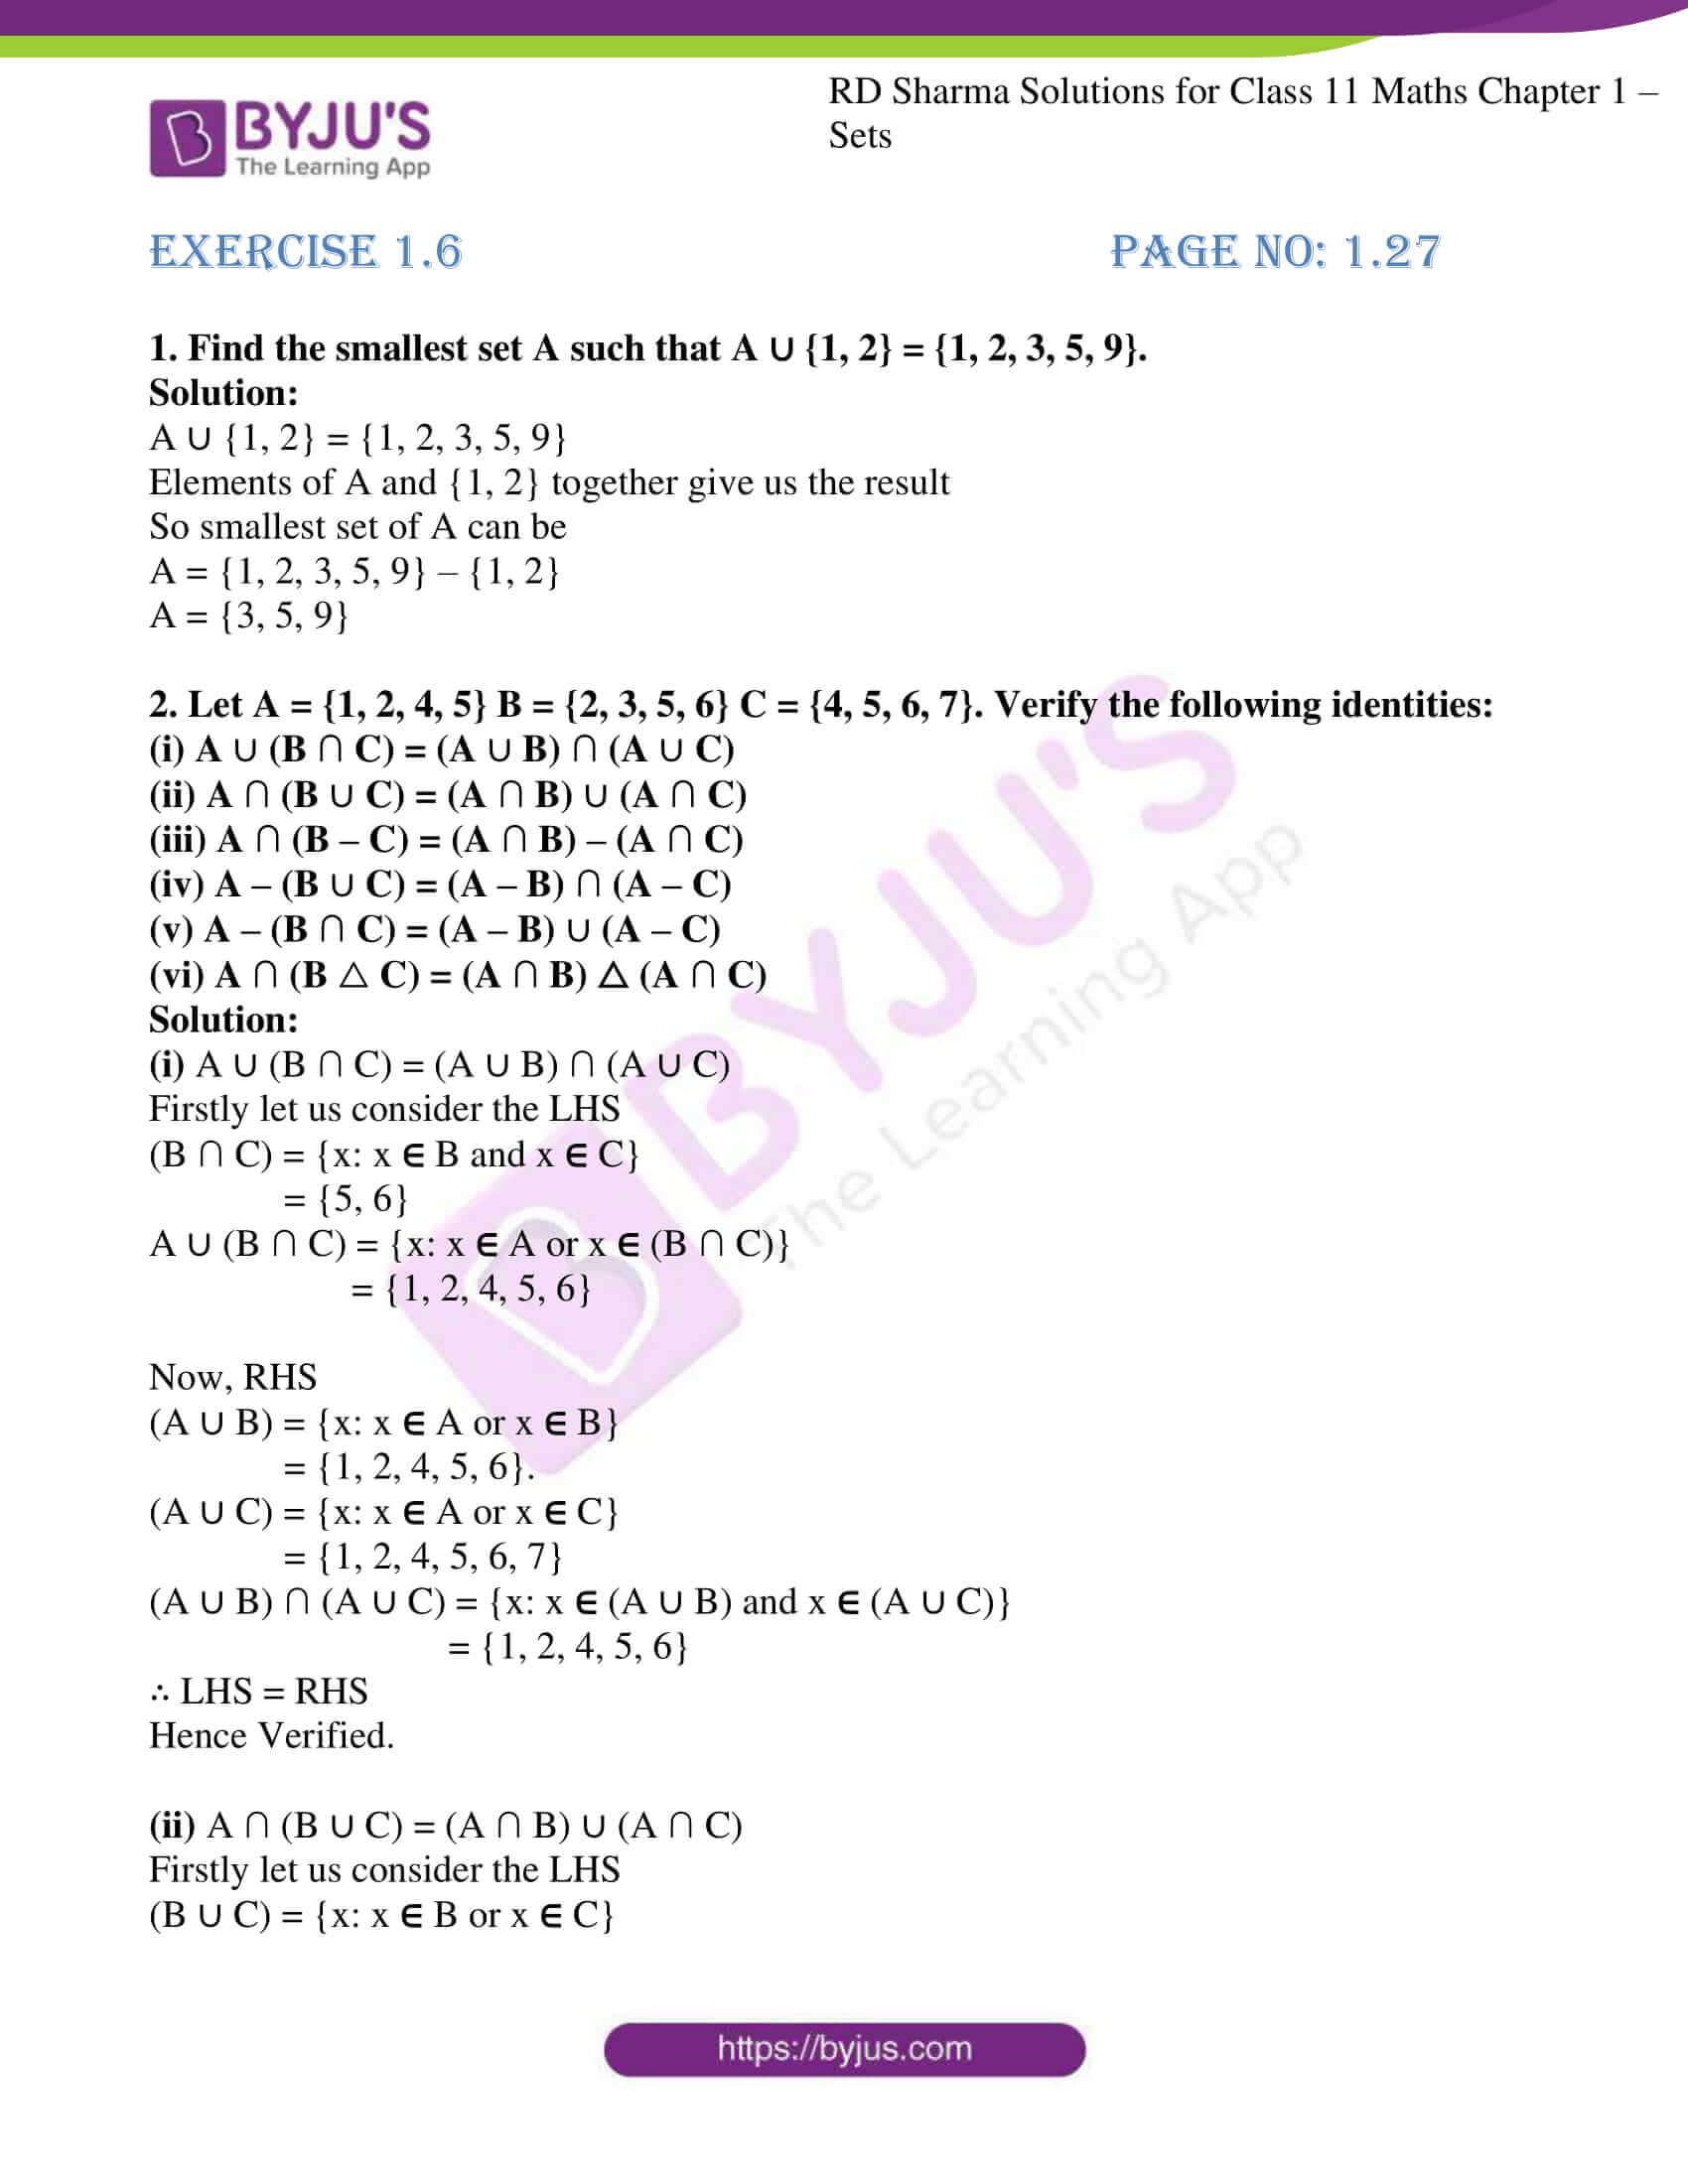 rd sharma class 11 maths ch 1 sets ex 6 1